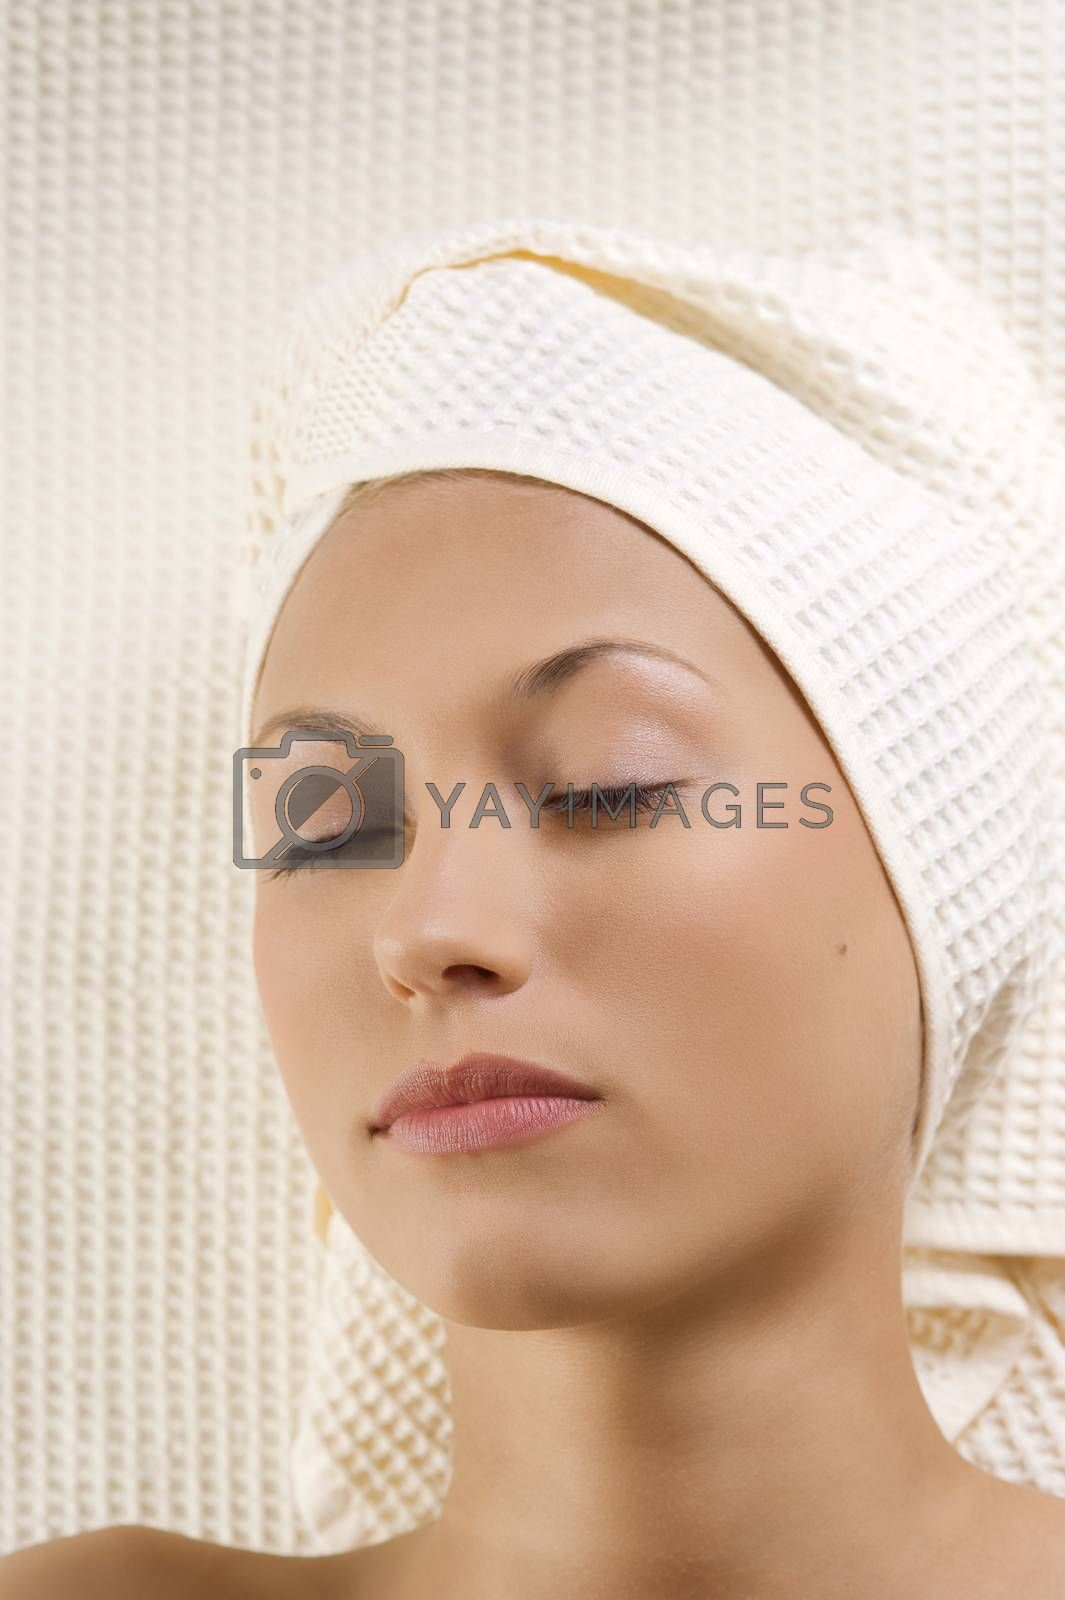 Royalty free image of woman in spa with closed eyes by fotoCD